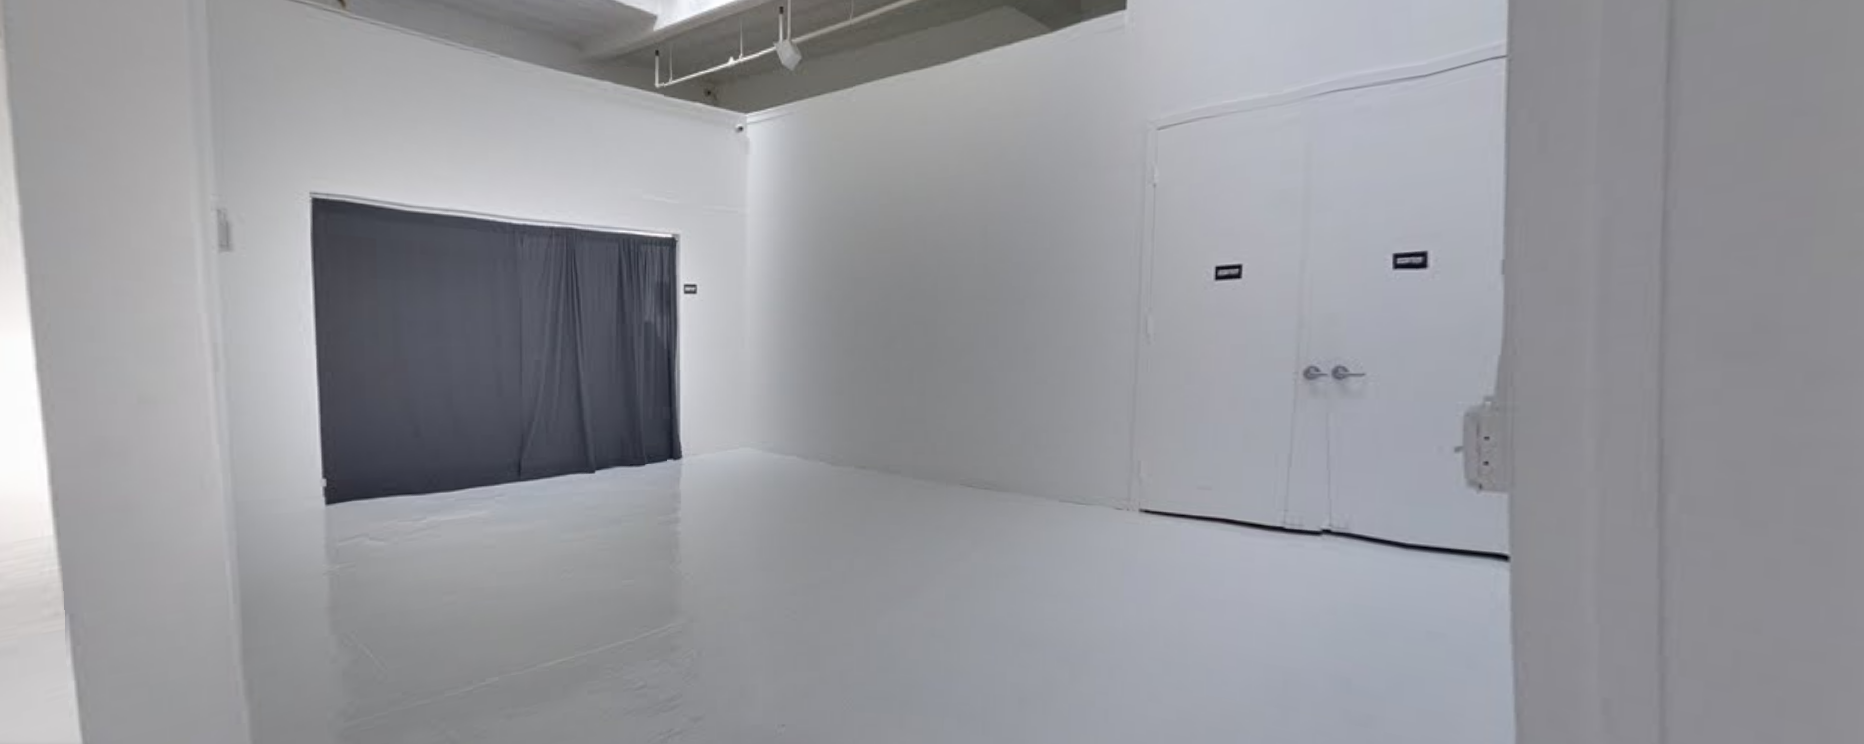 Staging Showroom Venue For Rent In New York